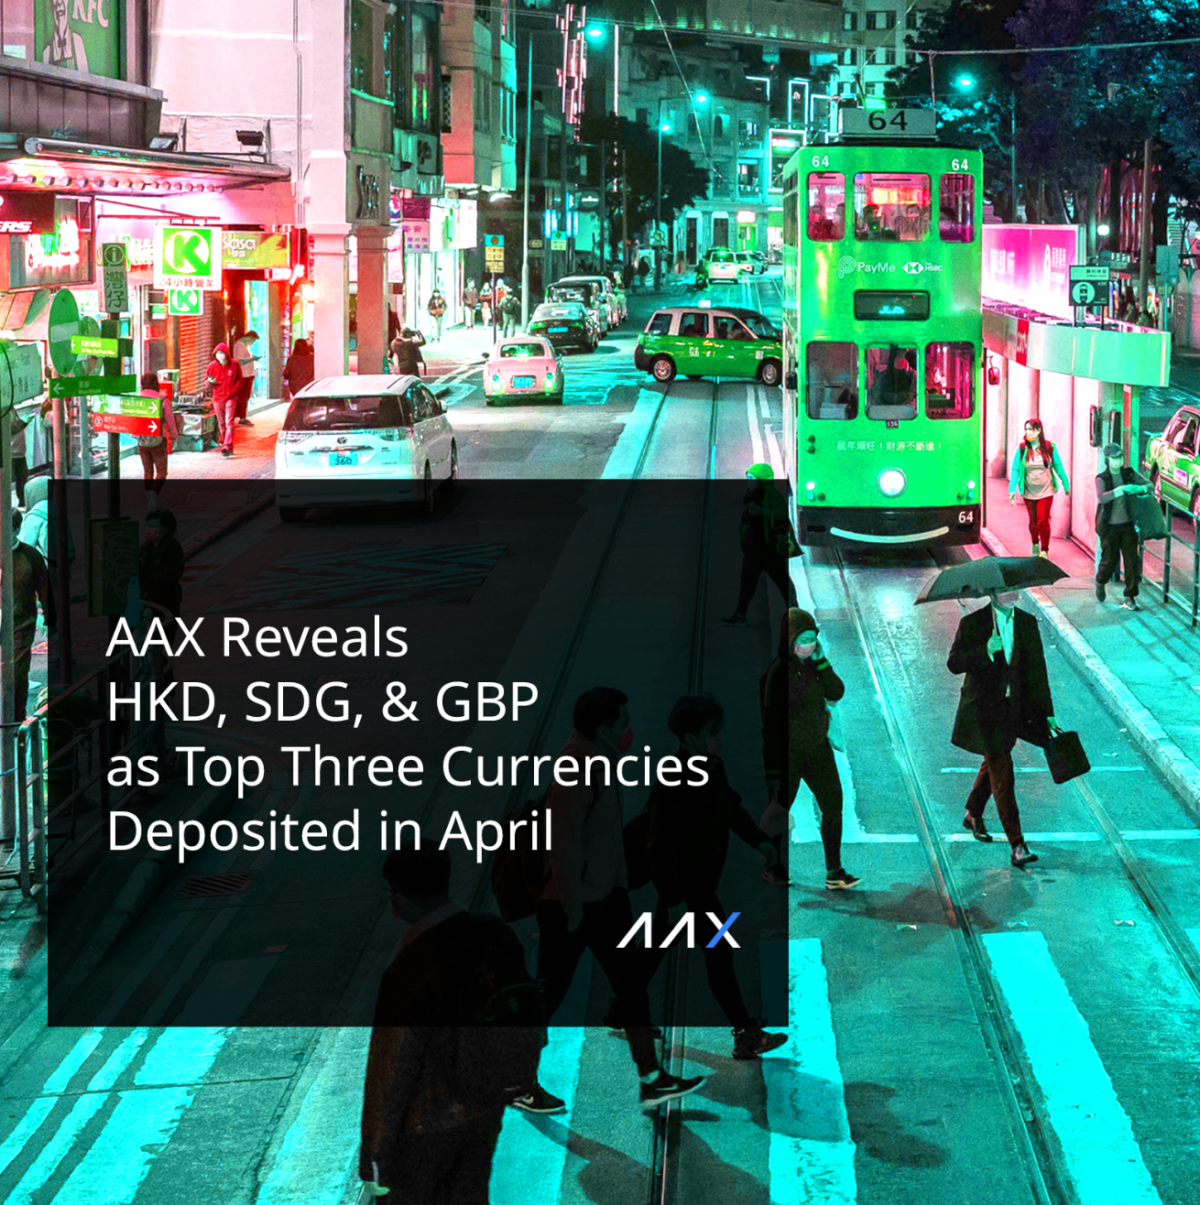 Crypto Exchange Platform AAX Reveals HKD, SDG, and GBP as the Top Three Fiat Currencies Deposited in April